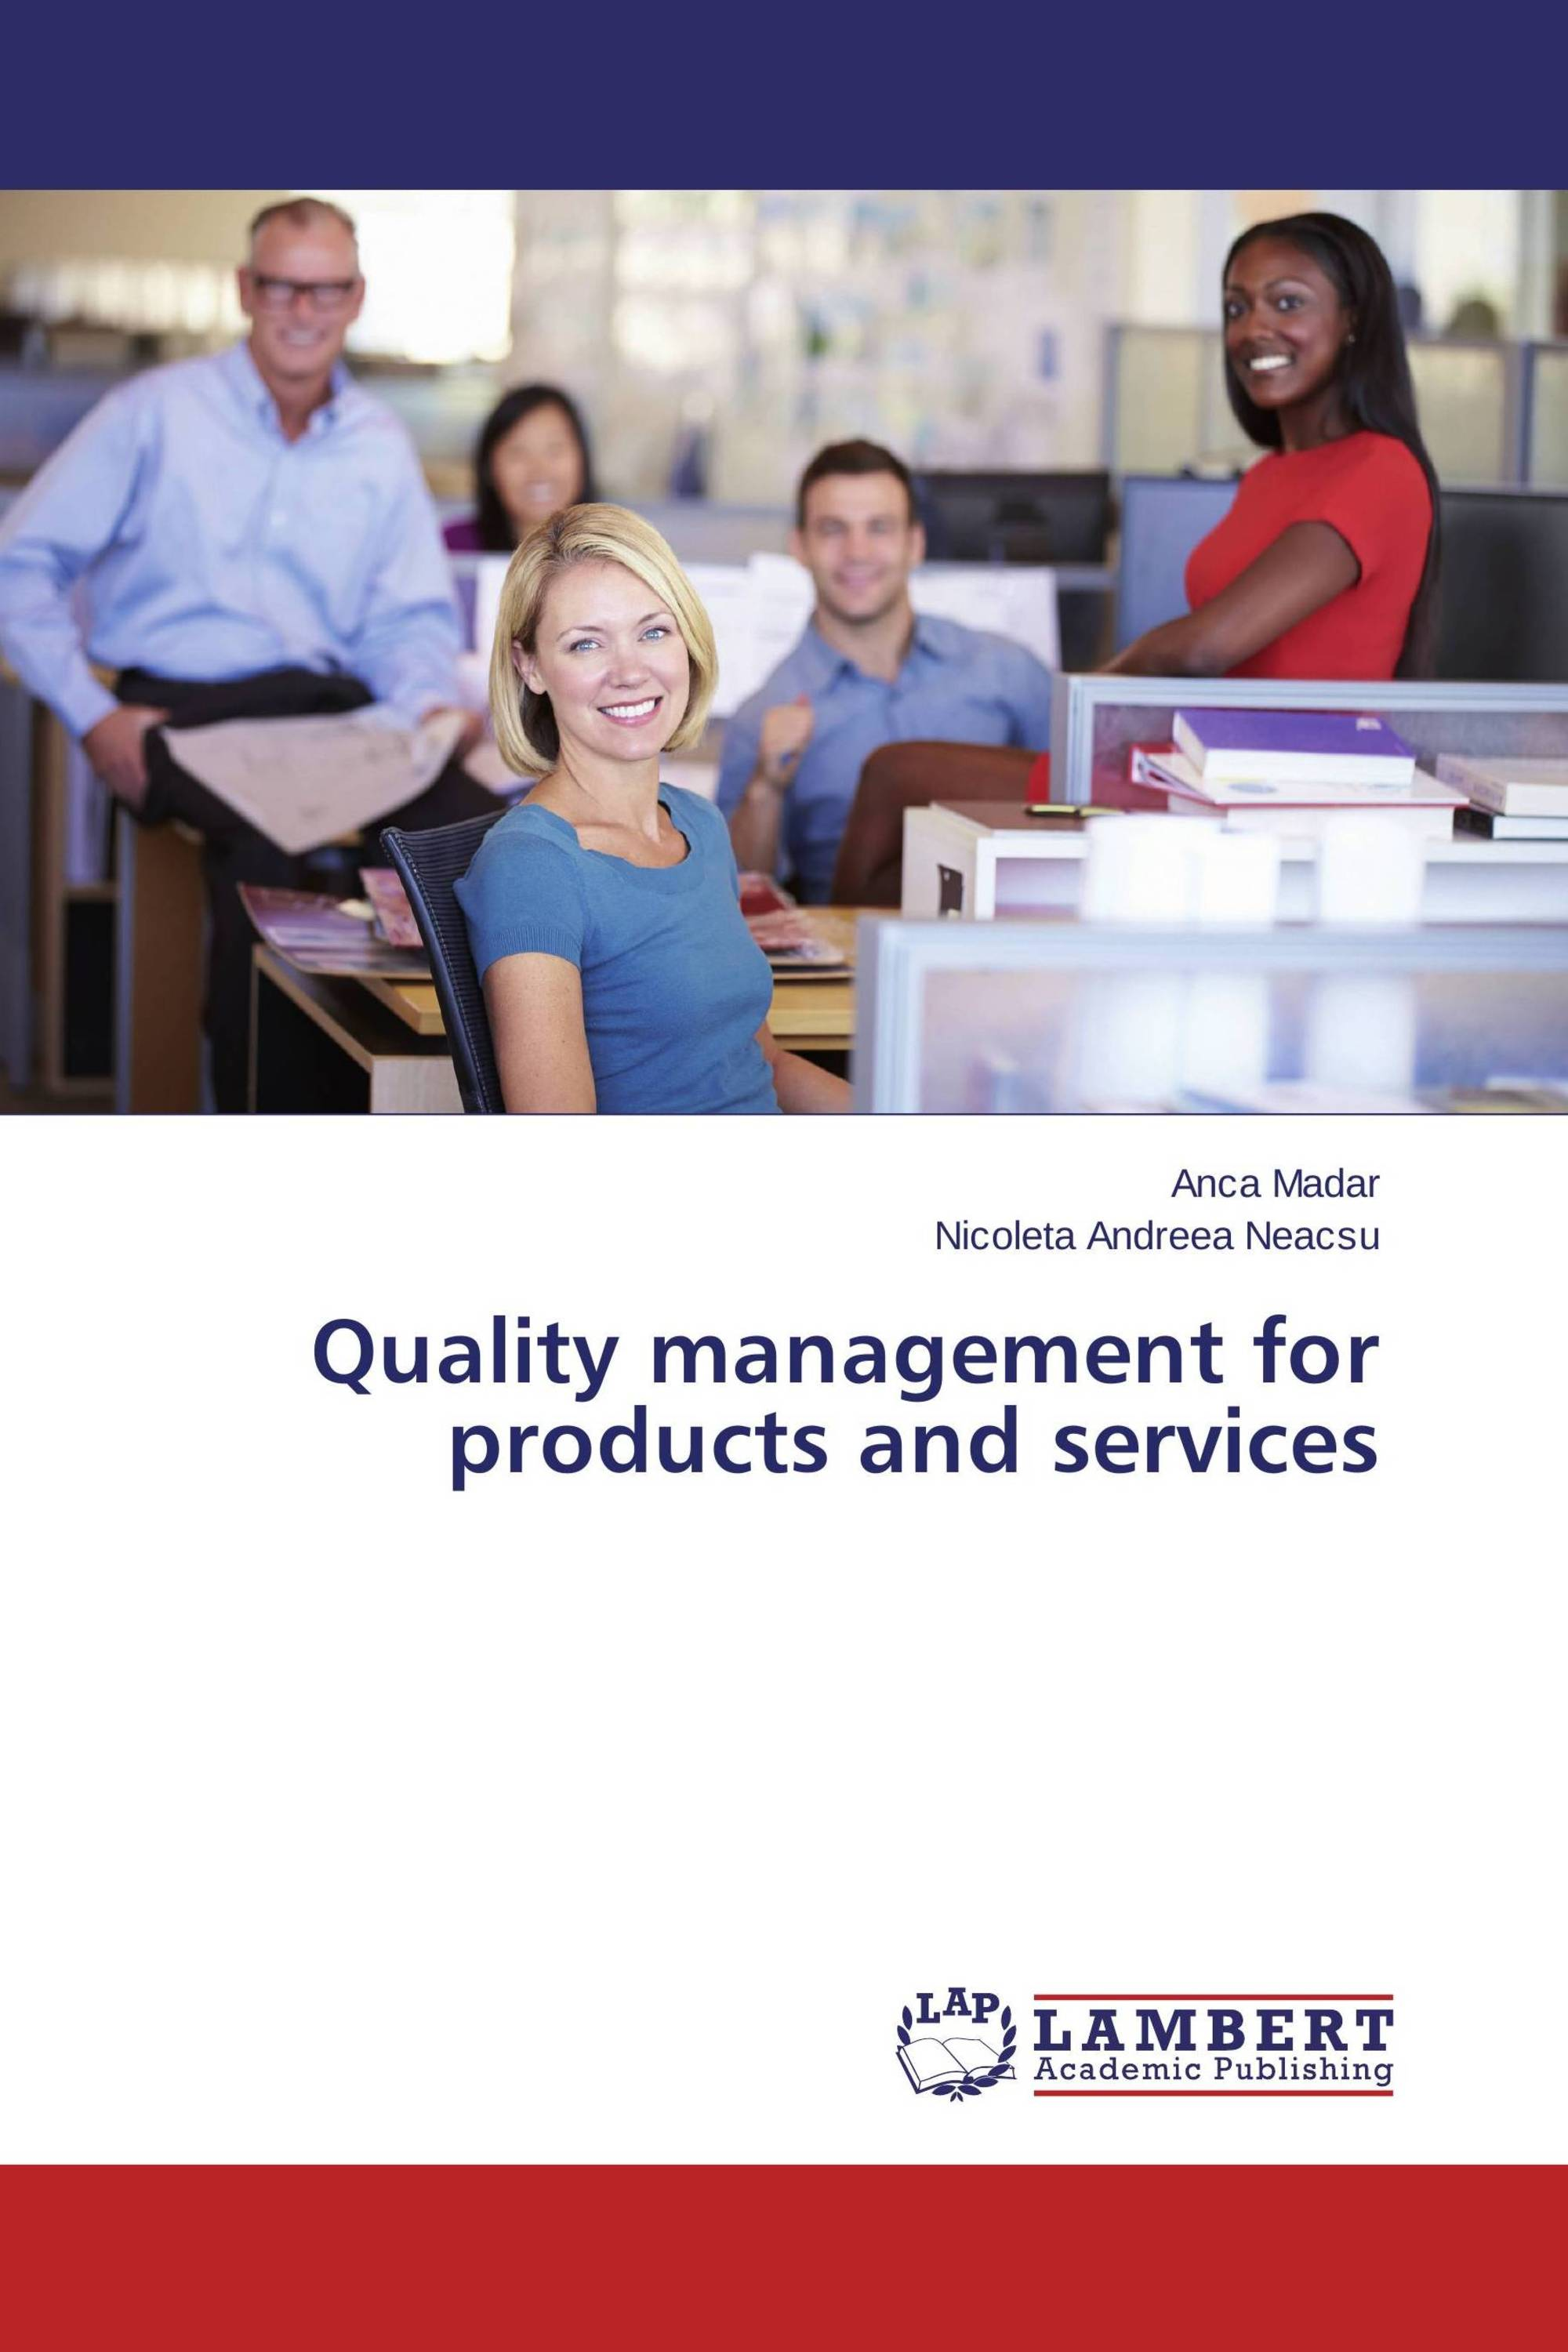 Quality management for products and services